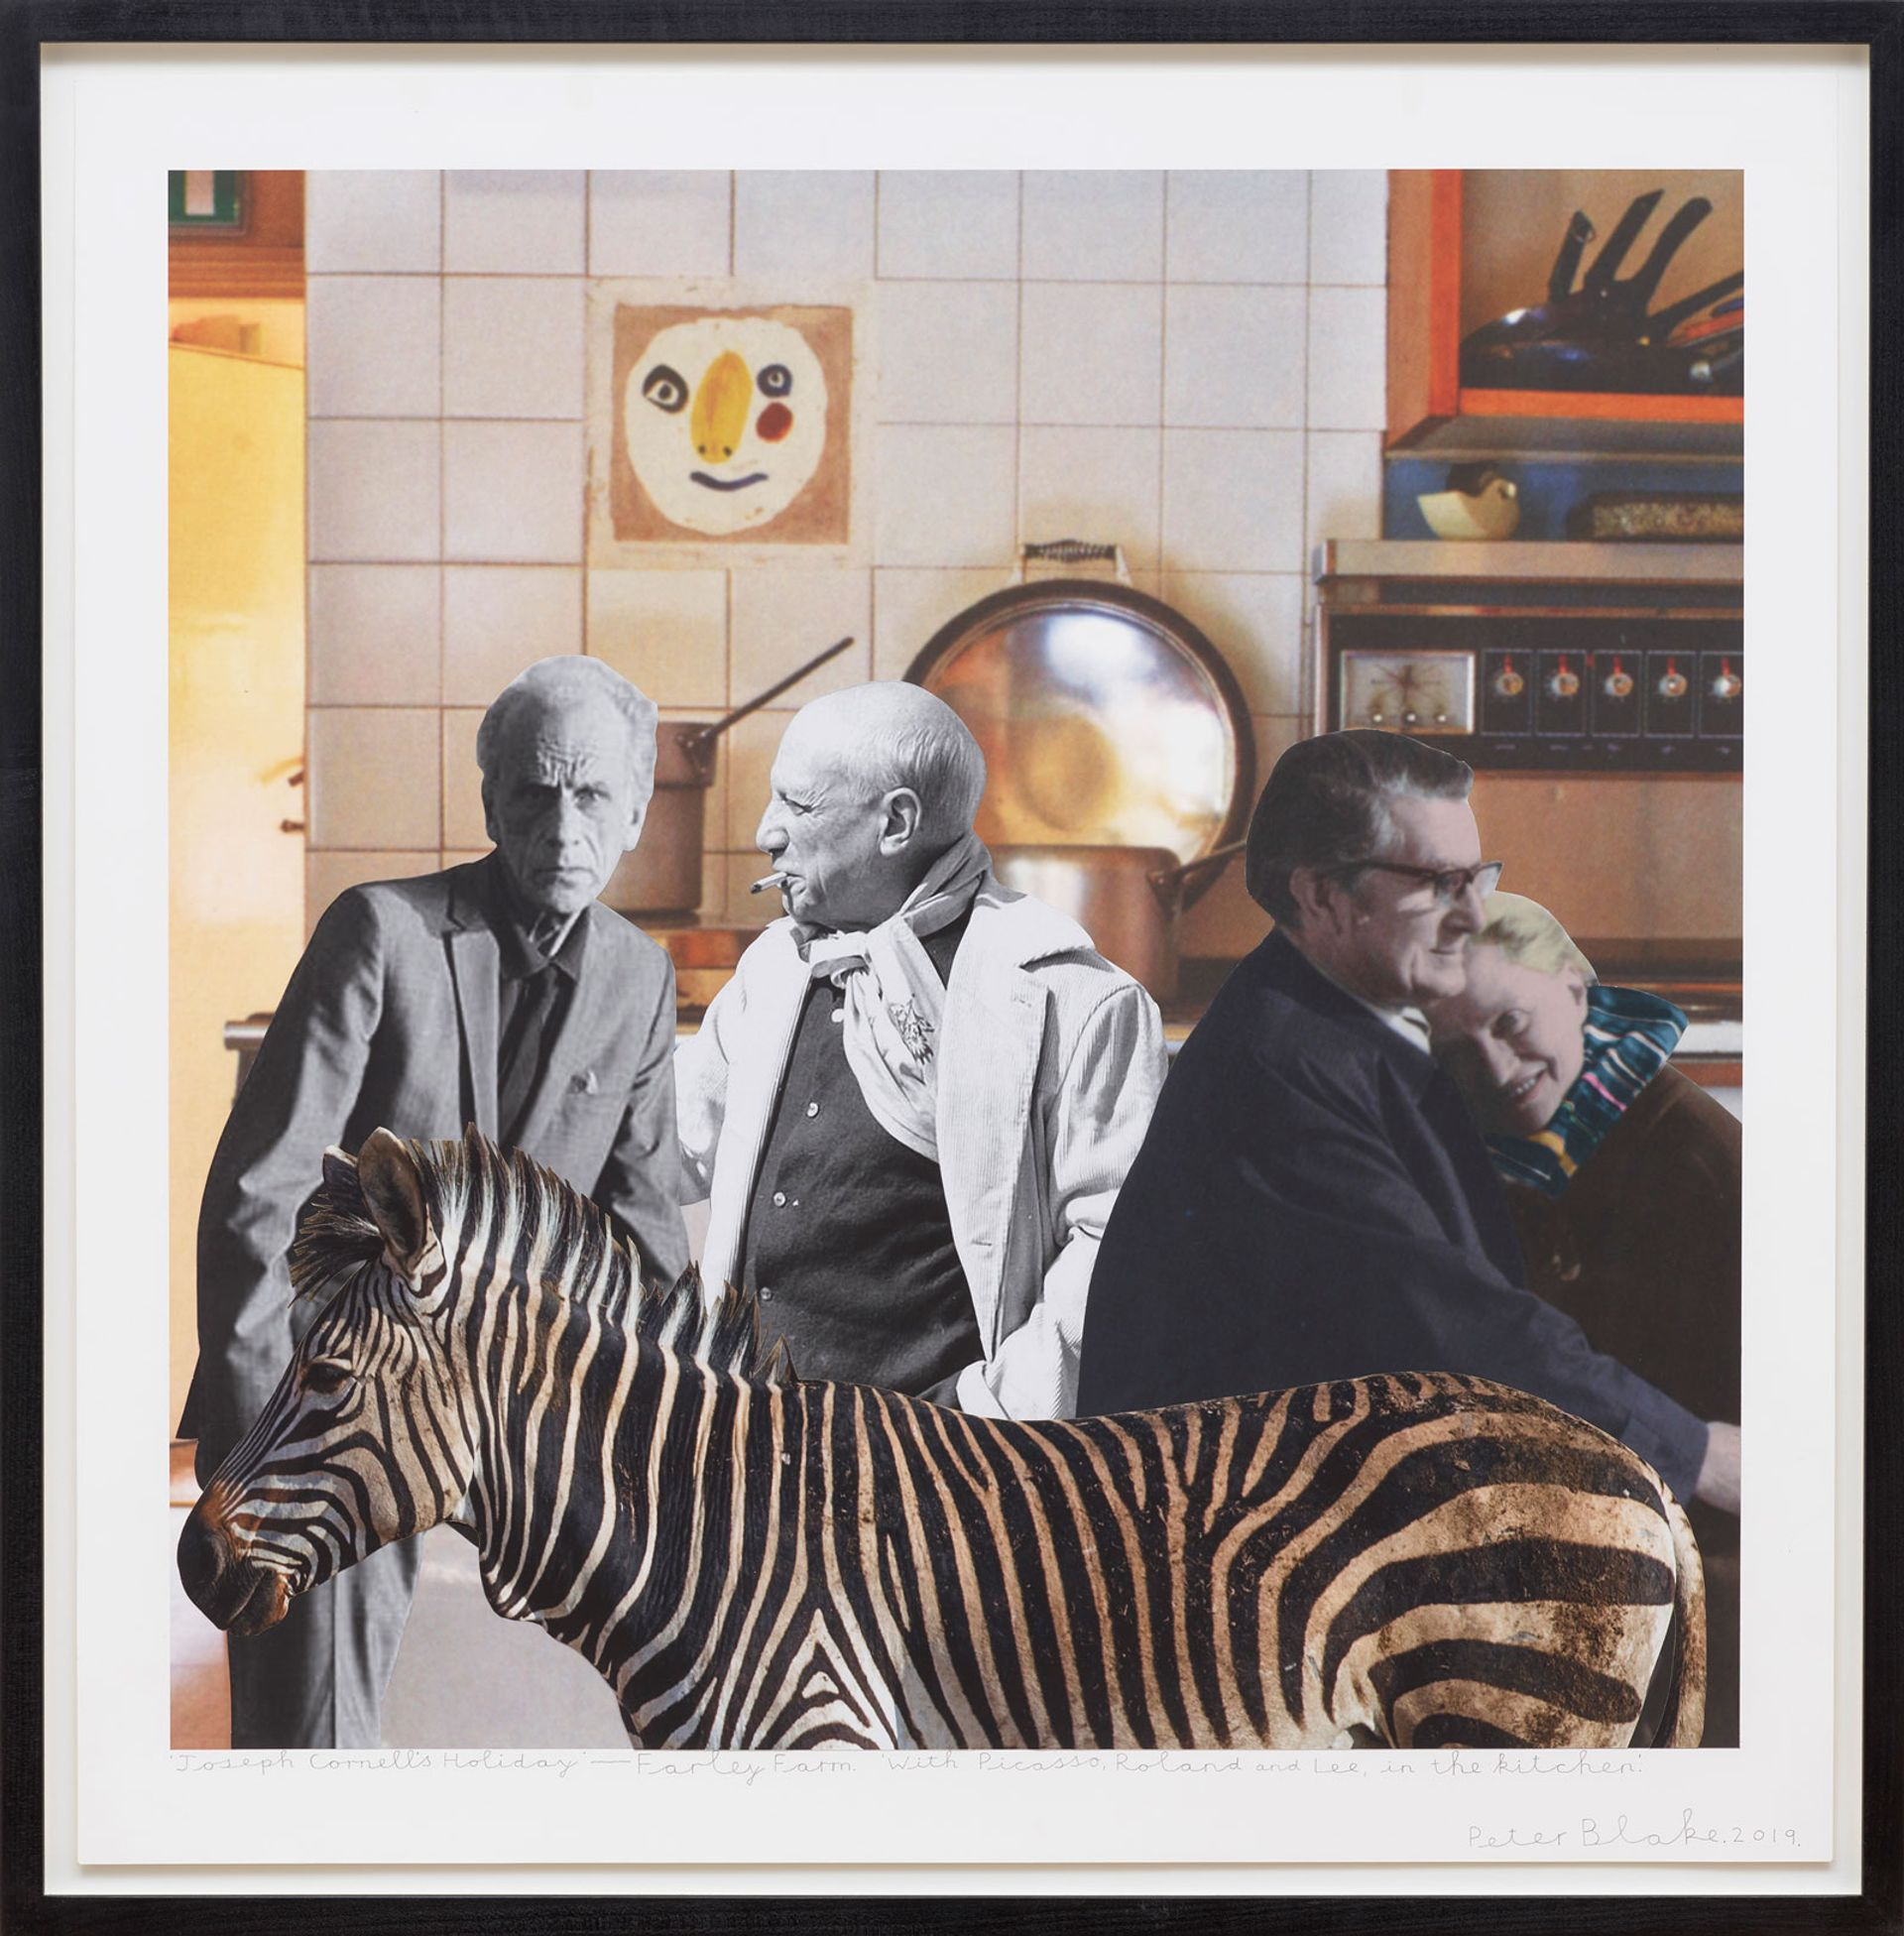 Peter Blake's Joseph Cornell's Holiday – England, Farley Farm. With Picasso, Roland and Lee in the kitchen (2019) Courtesy the artist and Waddington Custot